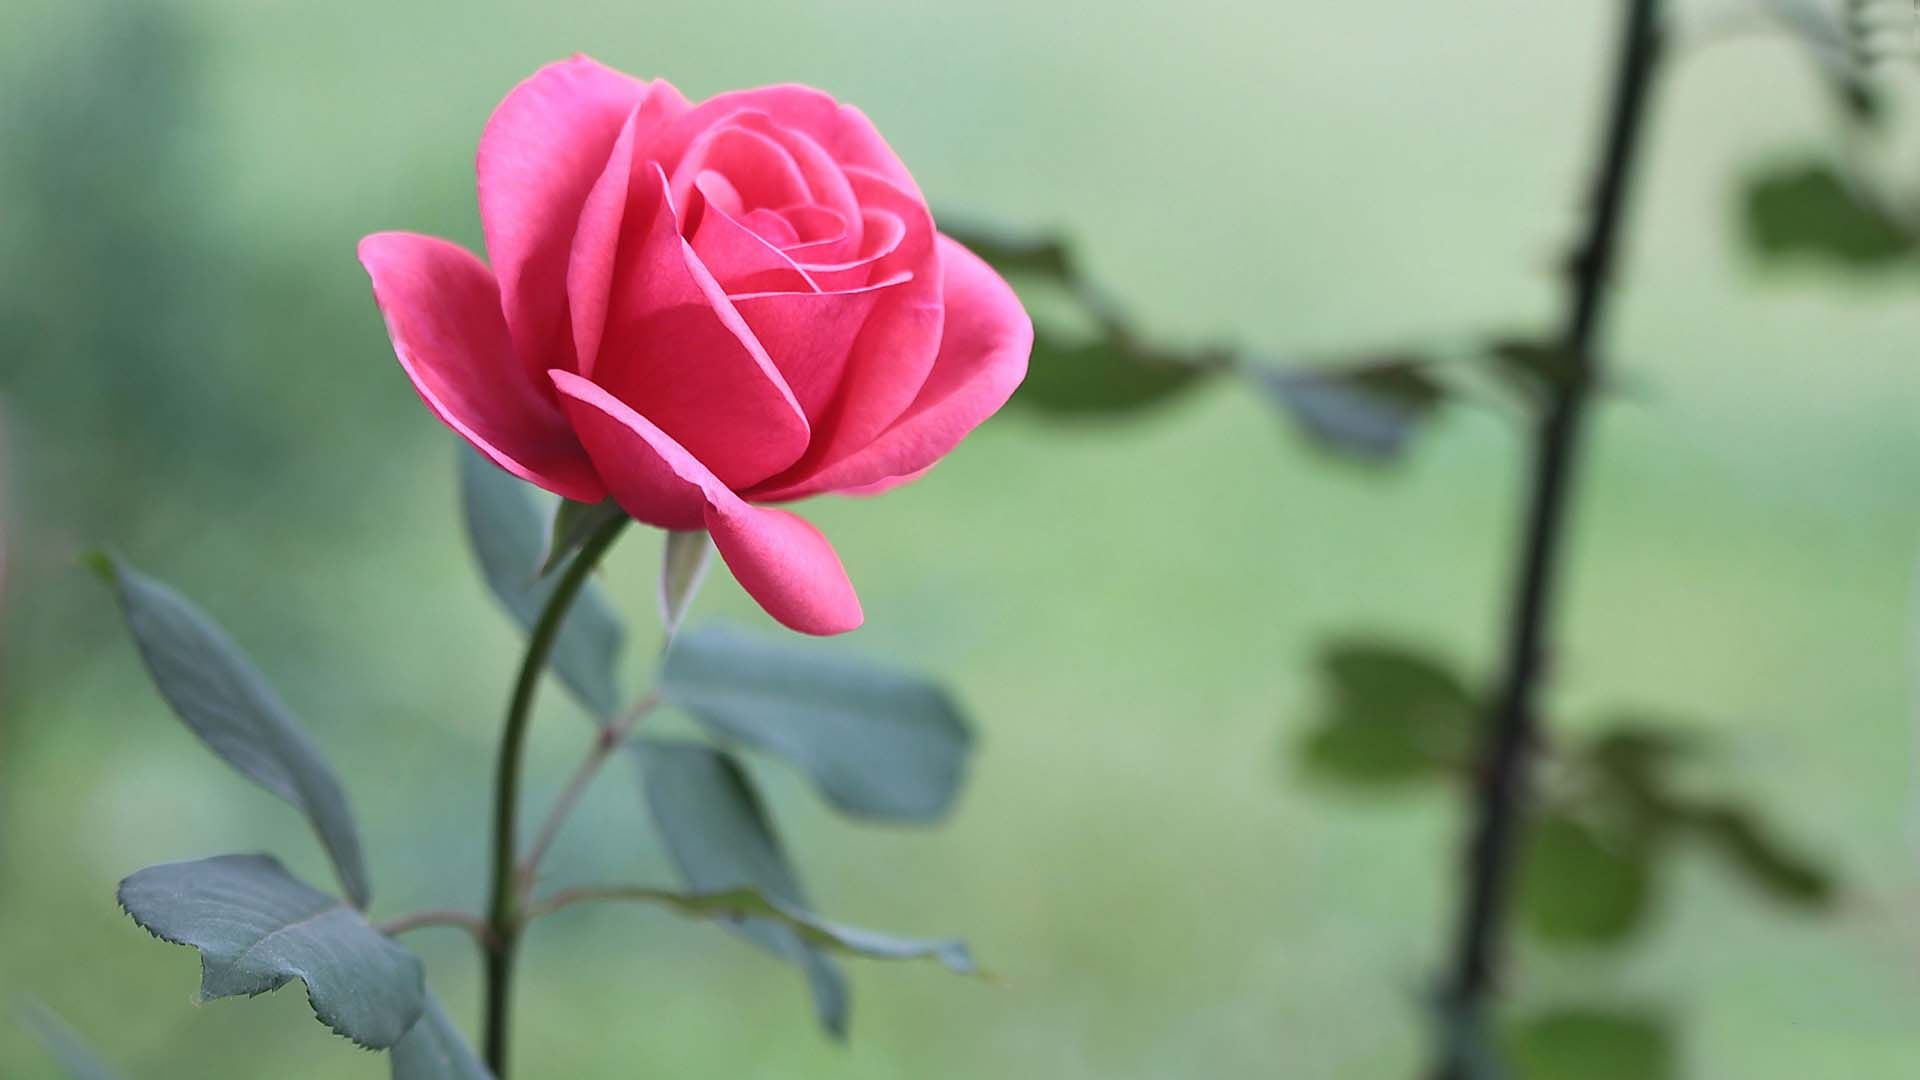 Desktop Wallpapers Flowers Backgrounds Pink Rose Www Papere